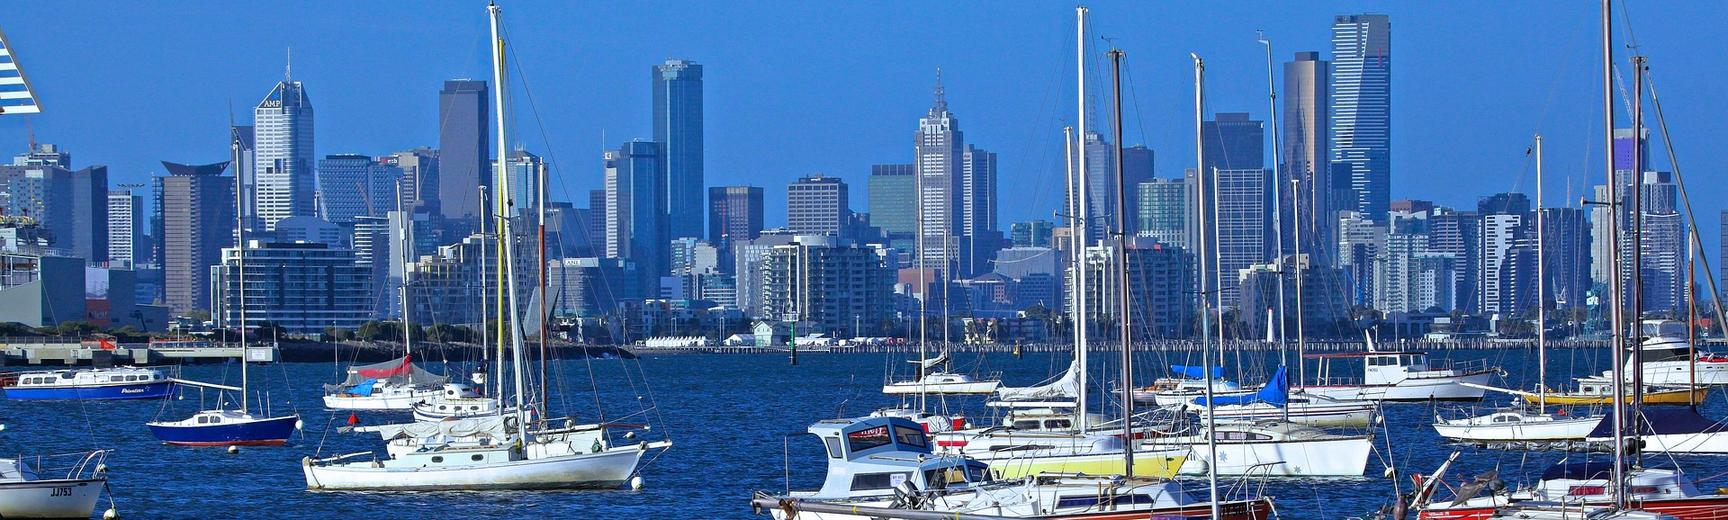 The skyline of Melbourne, Australia, with sailing boats in the foreground